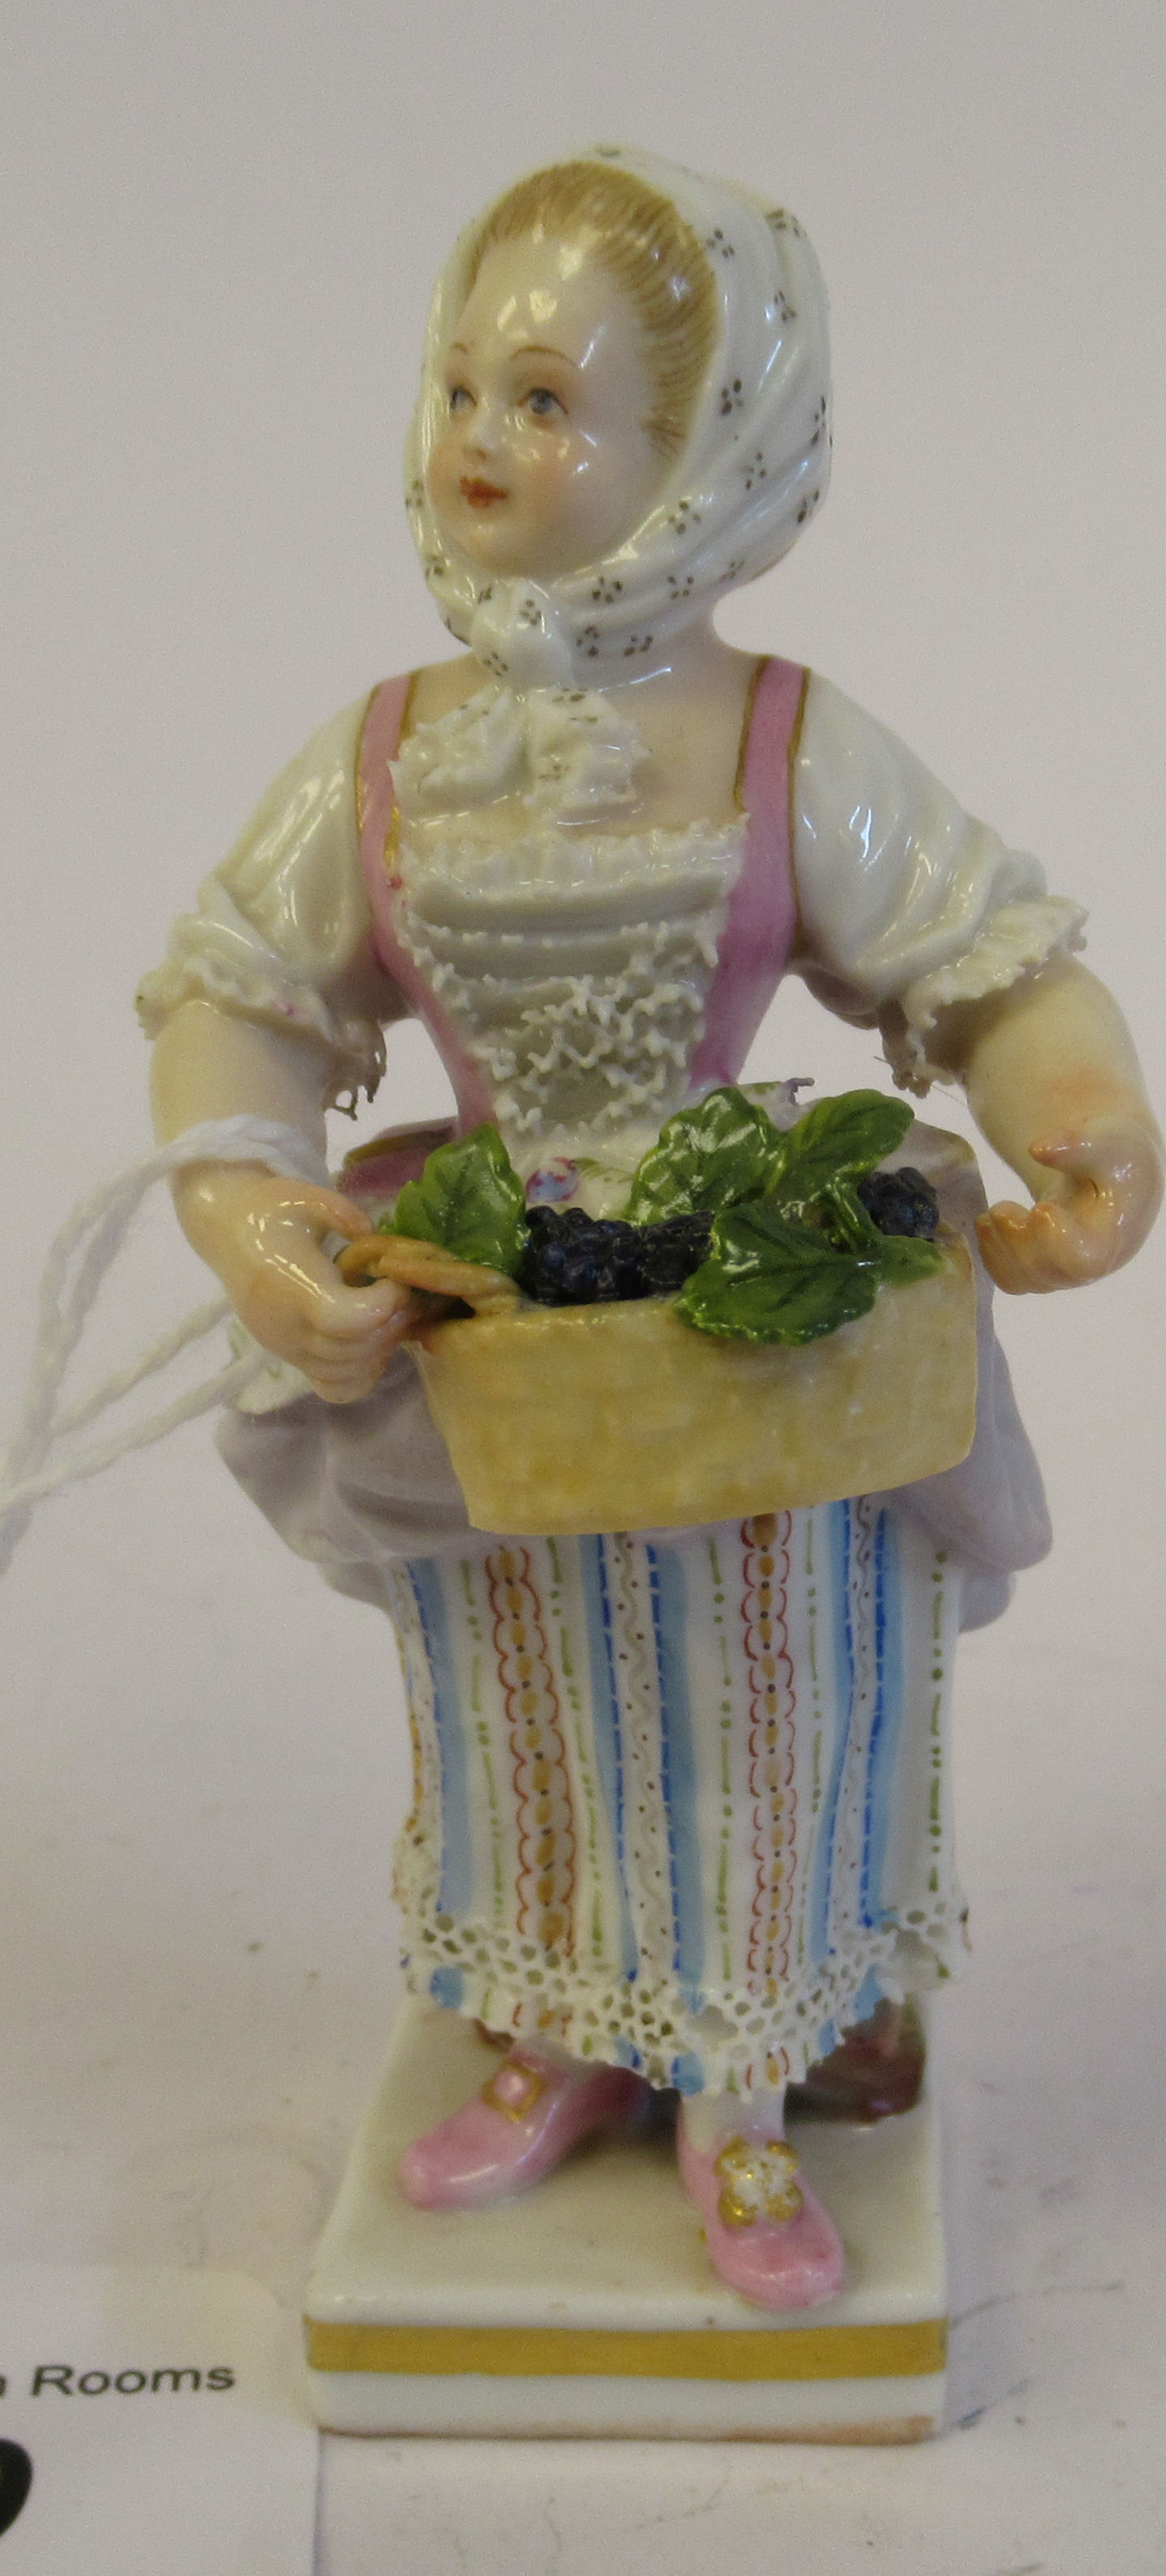 A 19th/20thC Meissen porcelain figure, a girl wearing a floral skirt, carrying a basket of grapes,